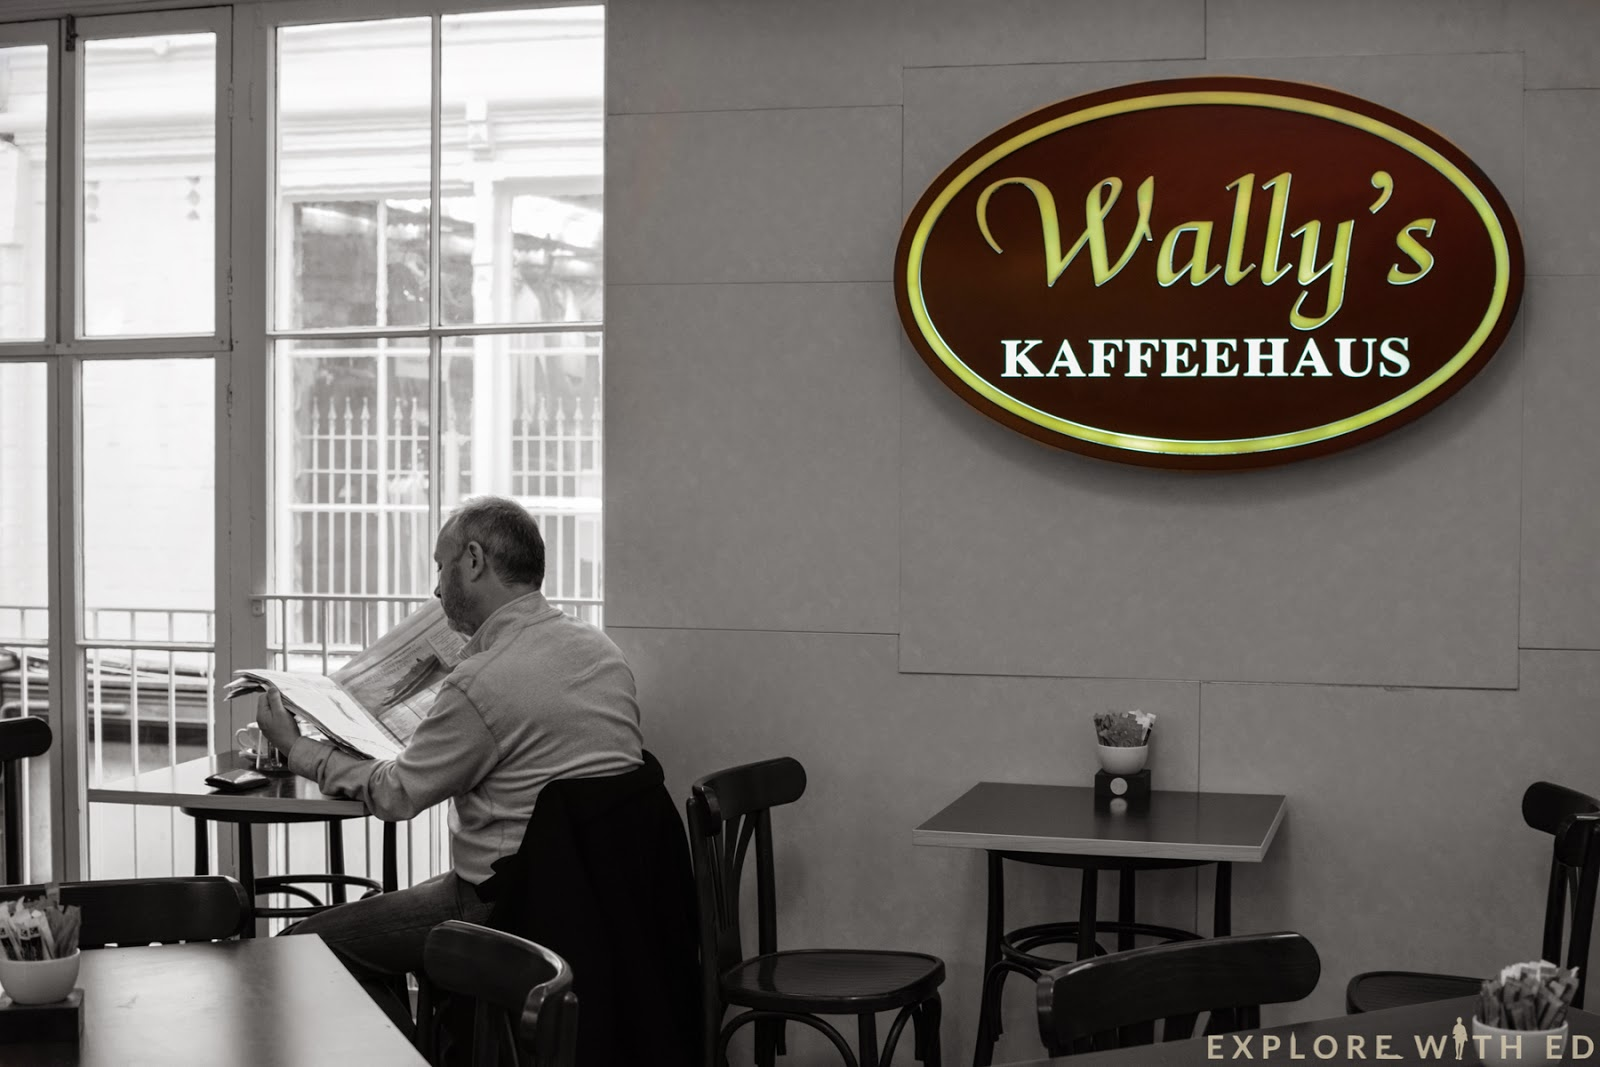 Wally's Kaffeehaus Interior